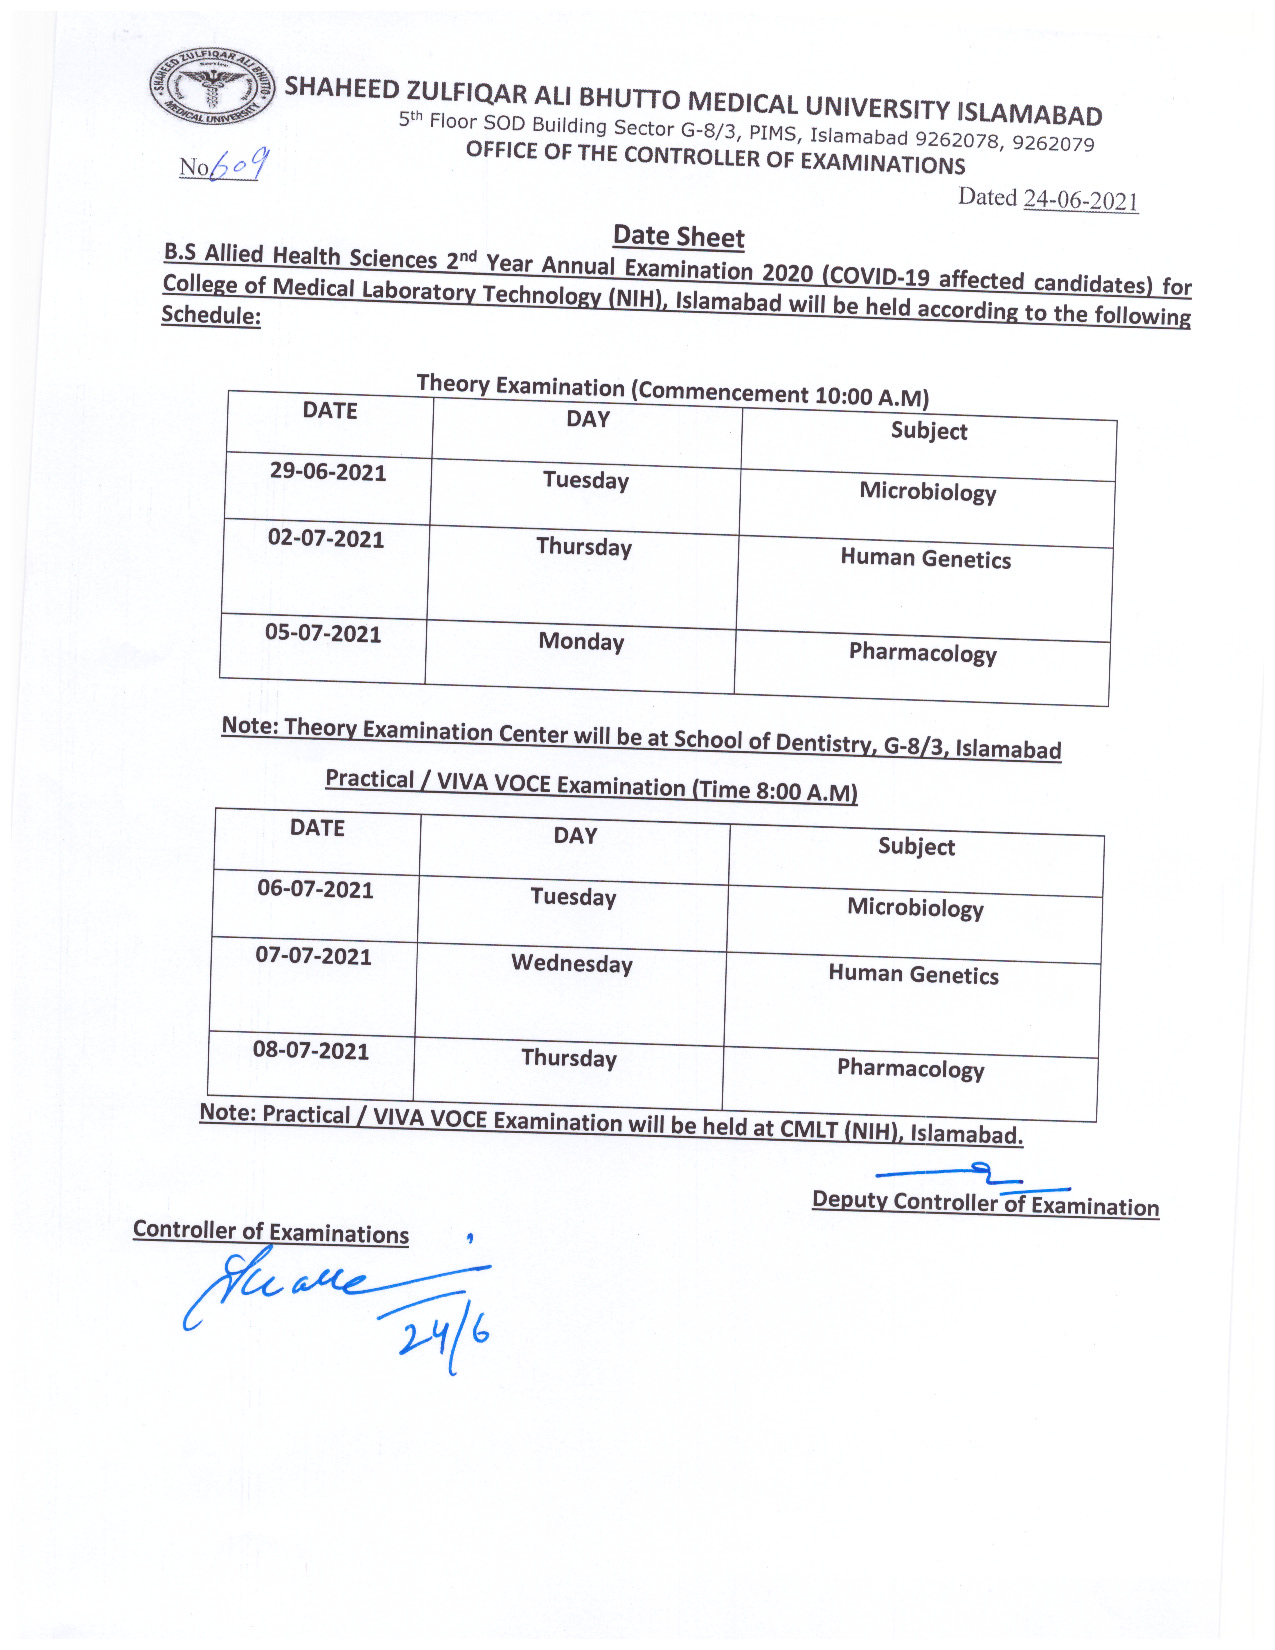 Date Sheet BS Allied Health Sciences 2nd Year Annual Examination 2020